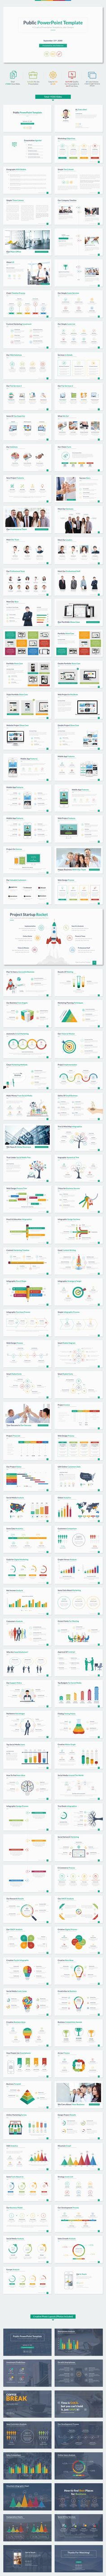 Public PowerPoint Template on Behance